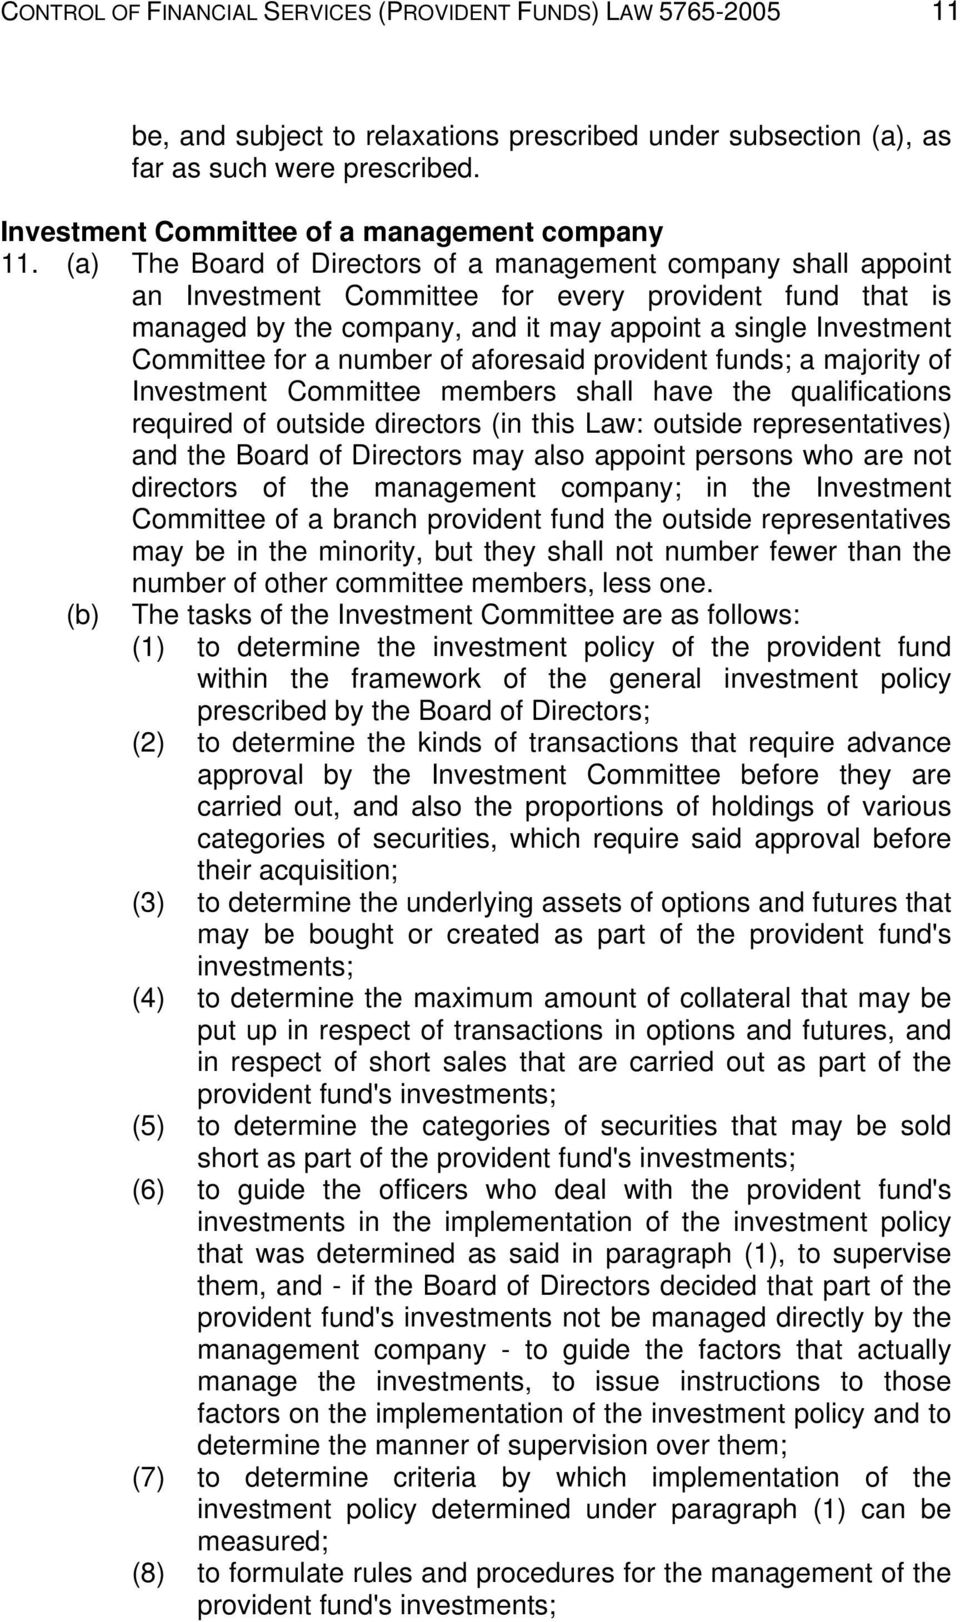 (a) The Board of Directors of a management company shall appoint an Investment Committee for every provident fund that is managed by the company, and it may appoint a single Investment Committee for